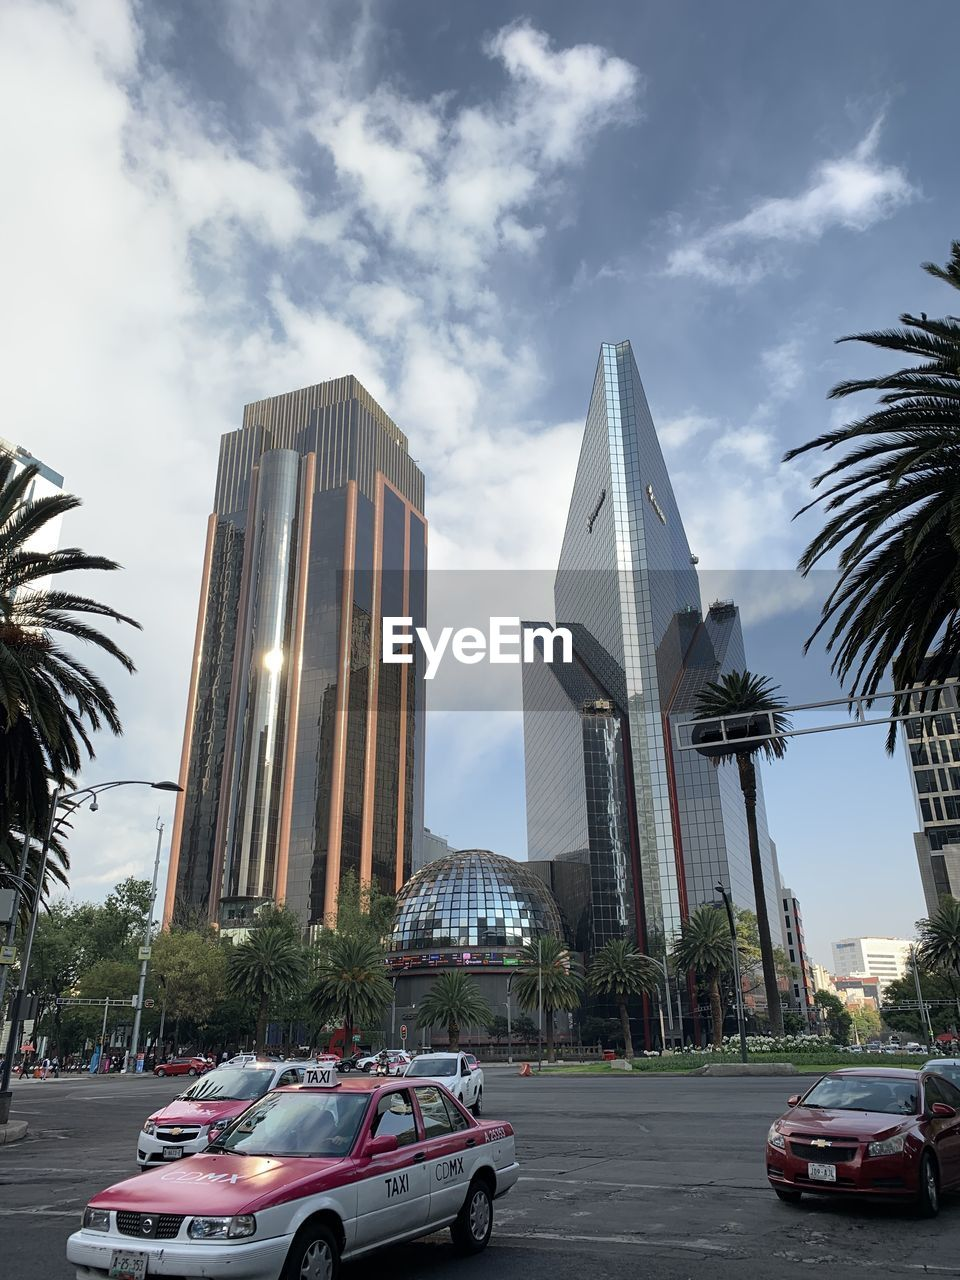 sky, palm tree, architecture, transportation, car, motor vehicle, tropical climate, building exterior, built structure, mode of transportation, tree, city, cloud - sky, land vehicle, nature, plant, building, office building exterior, day, street, tall - high, no people, outdoors, skyscraper, modern, luxury